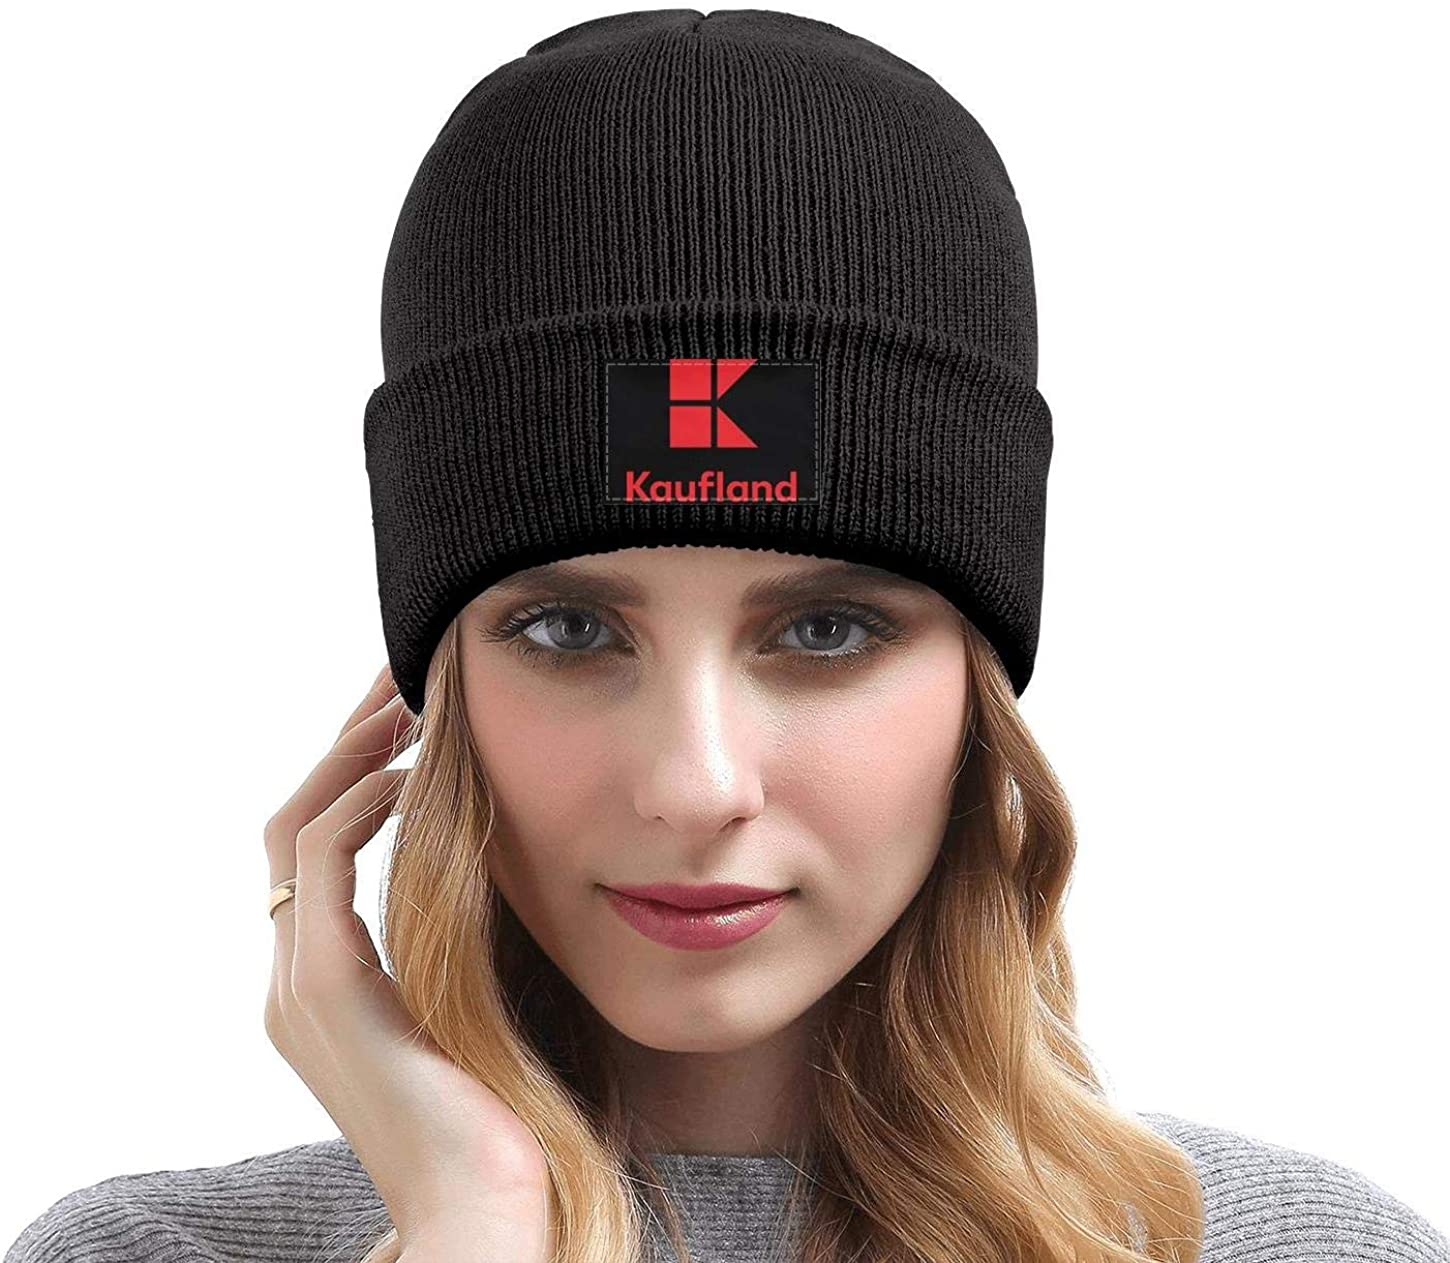 HF12GHFHI Unisex Knit Hat Winter Knit Caps for Mens Womens Beanie Hat